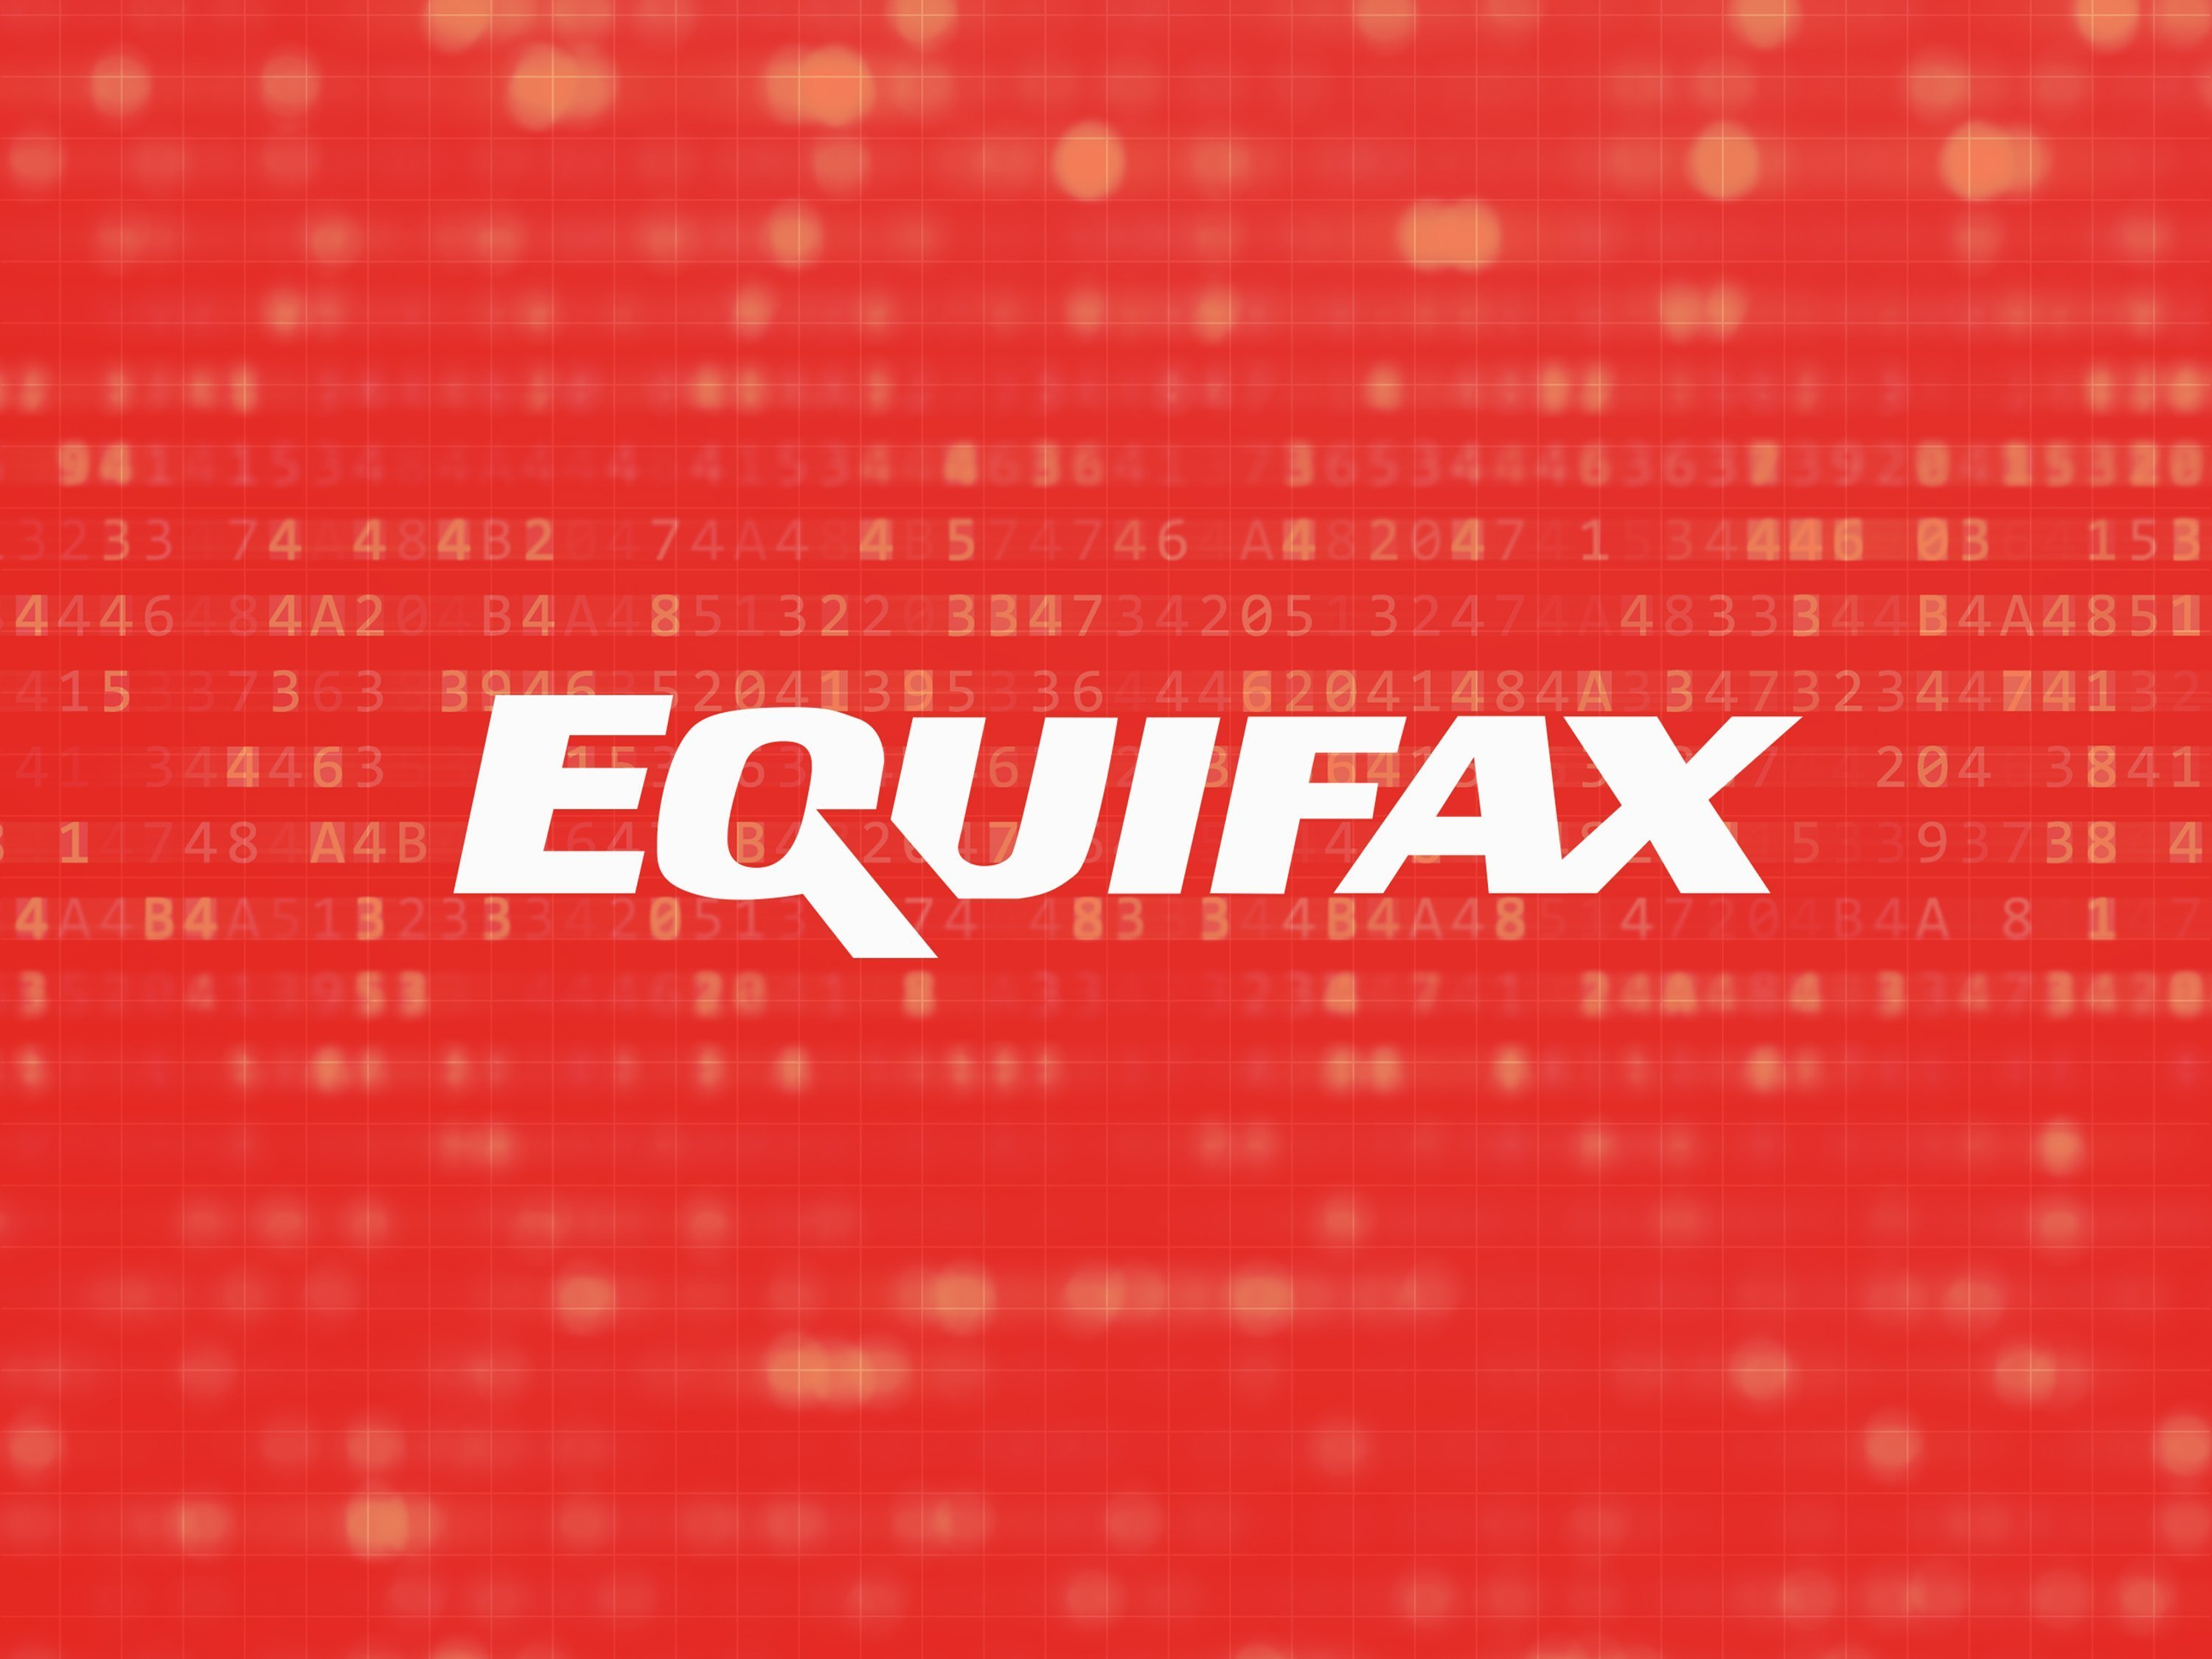 Equifax Signed Contract With IRS In September